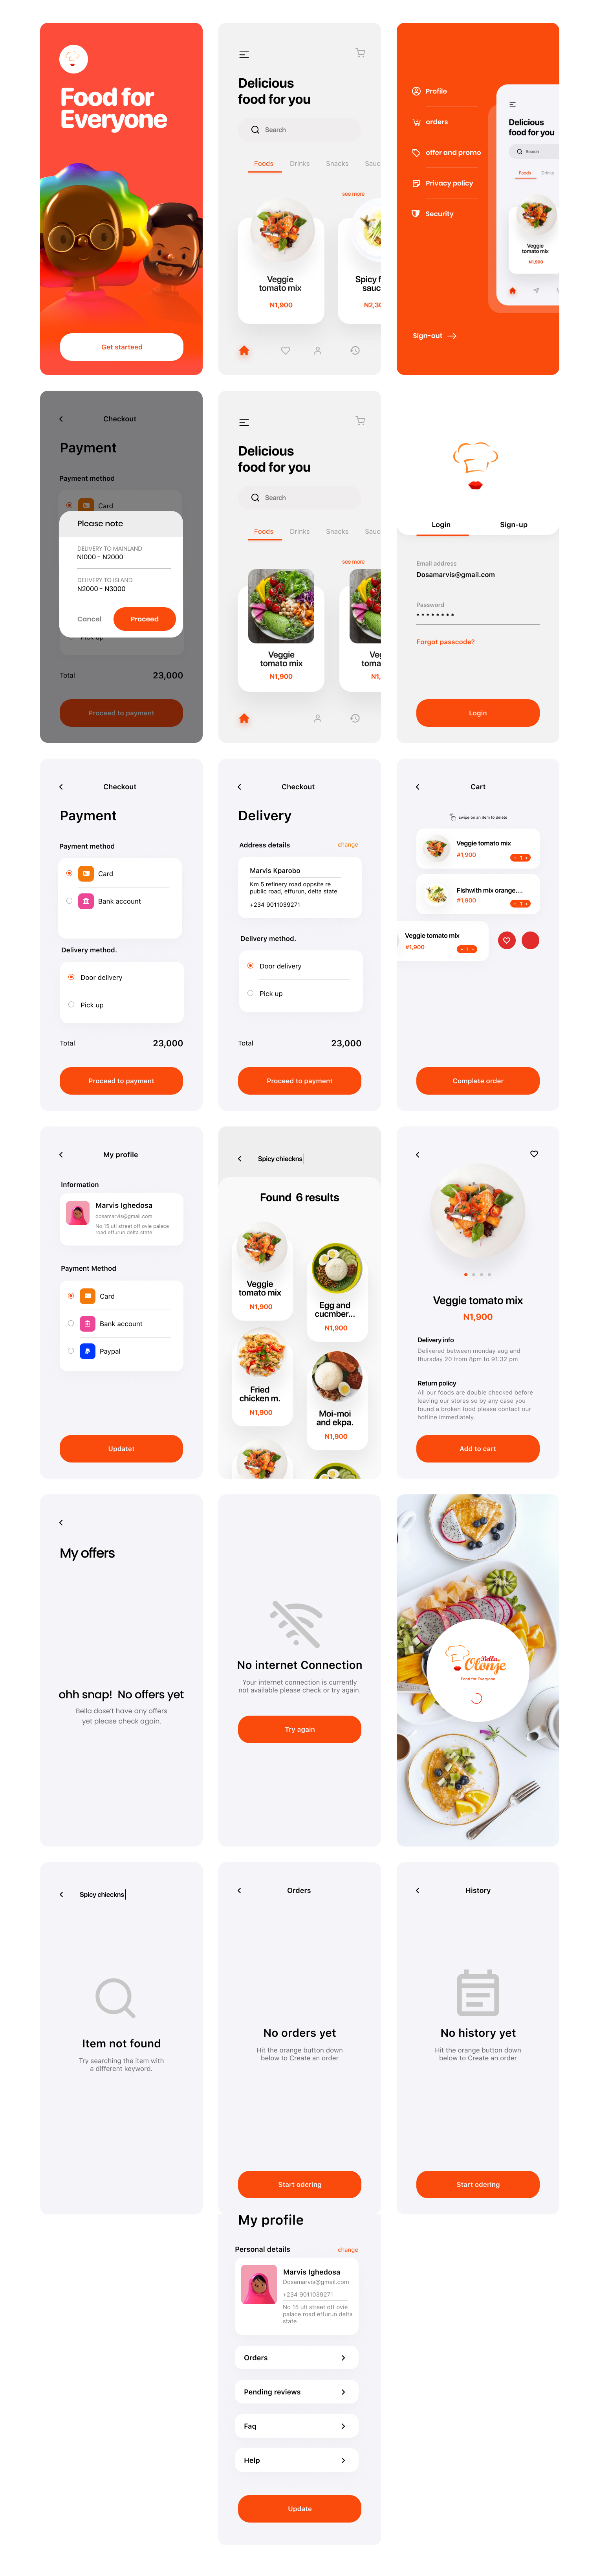 Food App Free UI Kit for Figma - Minimal and clean app design, 20+ screens for you to get started.